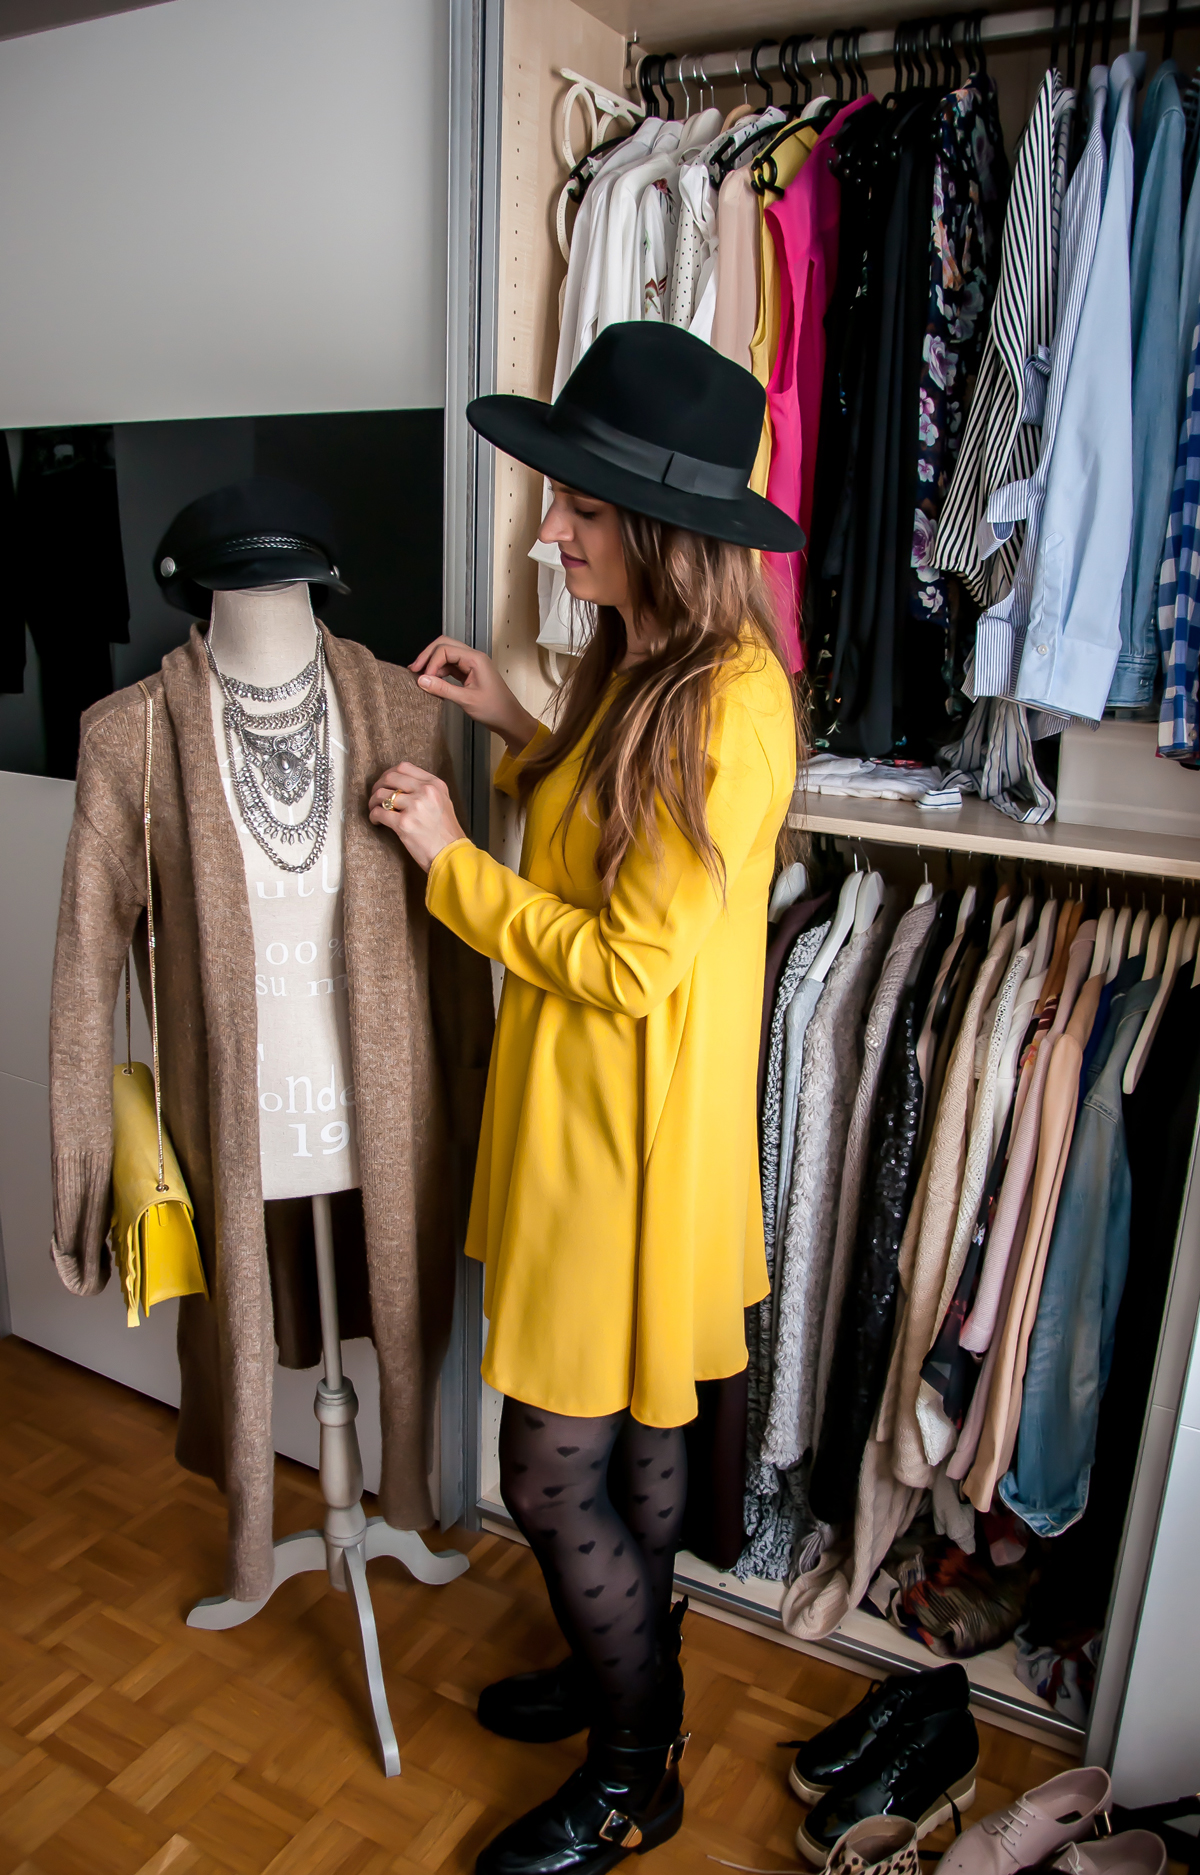 Fashionblogger, Andrea Steiner from Strawberries 'n' Champagne sell her Look at Tradono.